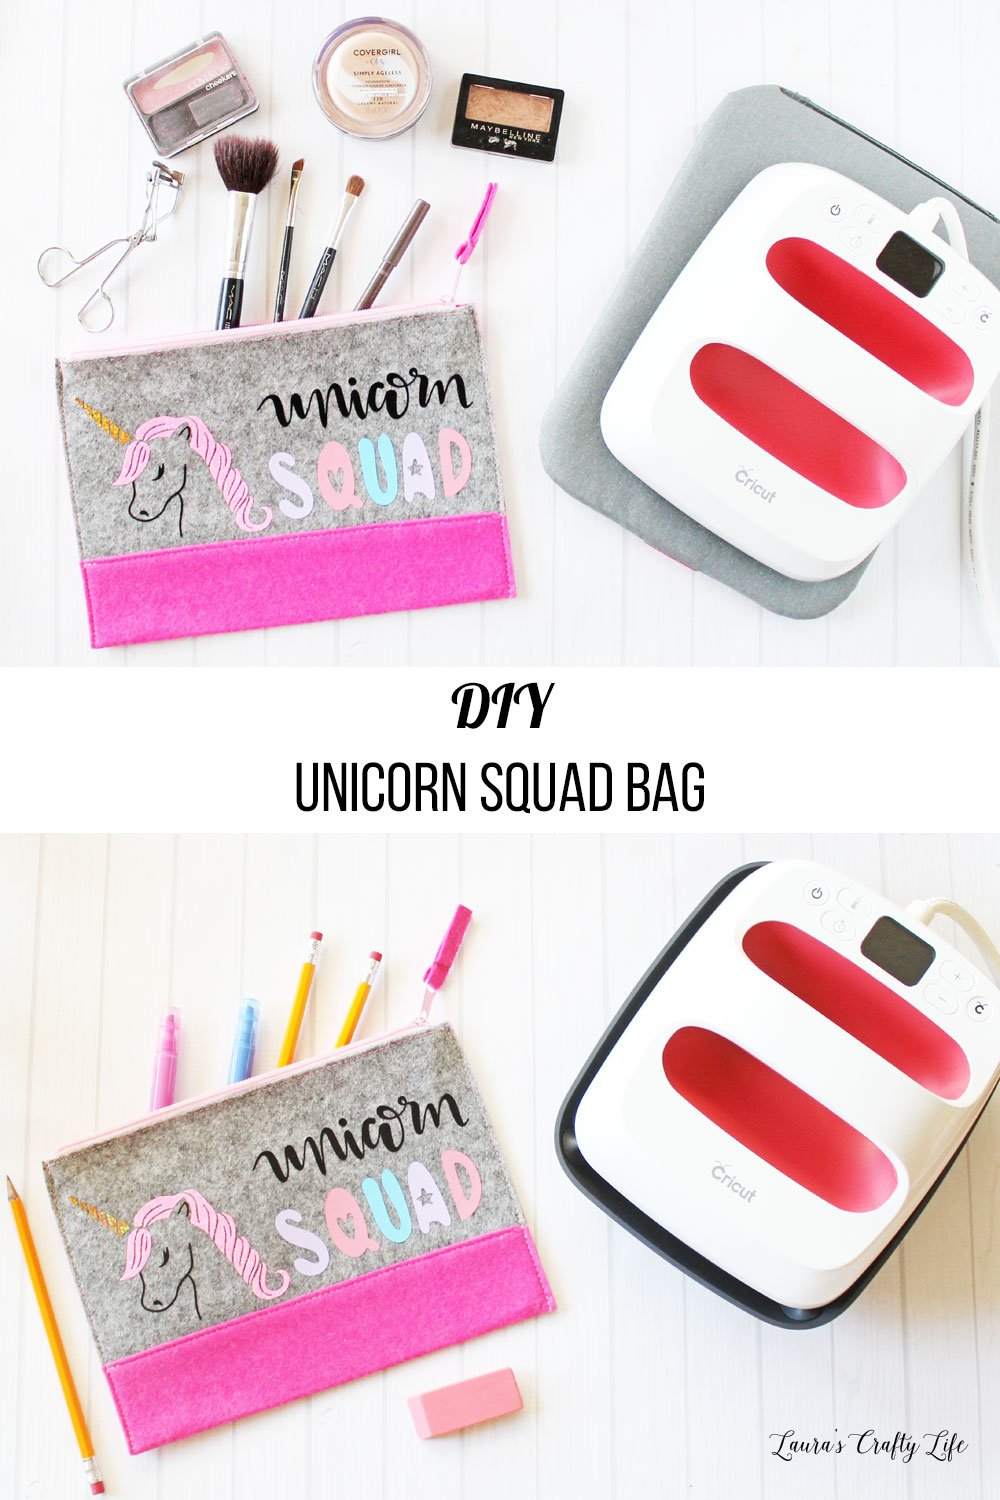 DIY unicorn squad bag with Cricut - personalize a makeup bag or pencil pouch for your favorite unicorn lover. #cricutmade #laurascraftylife #unicorn